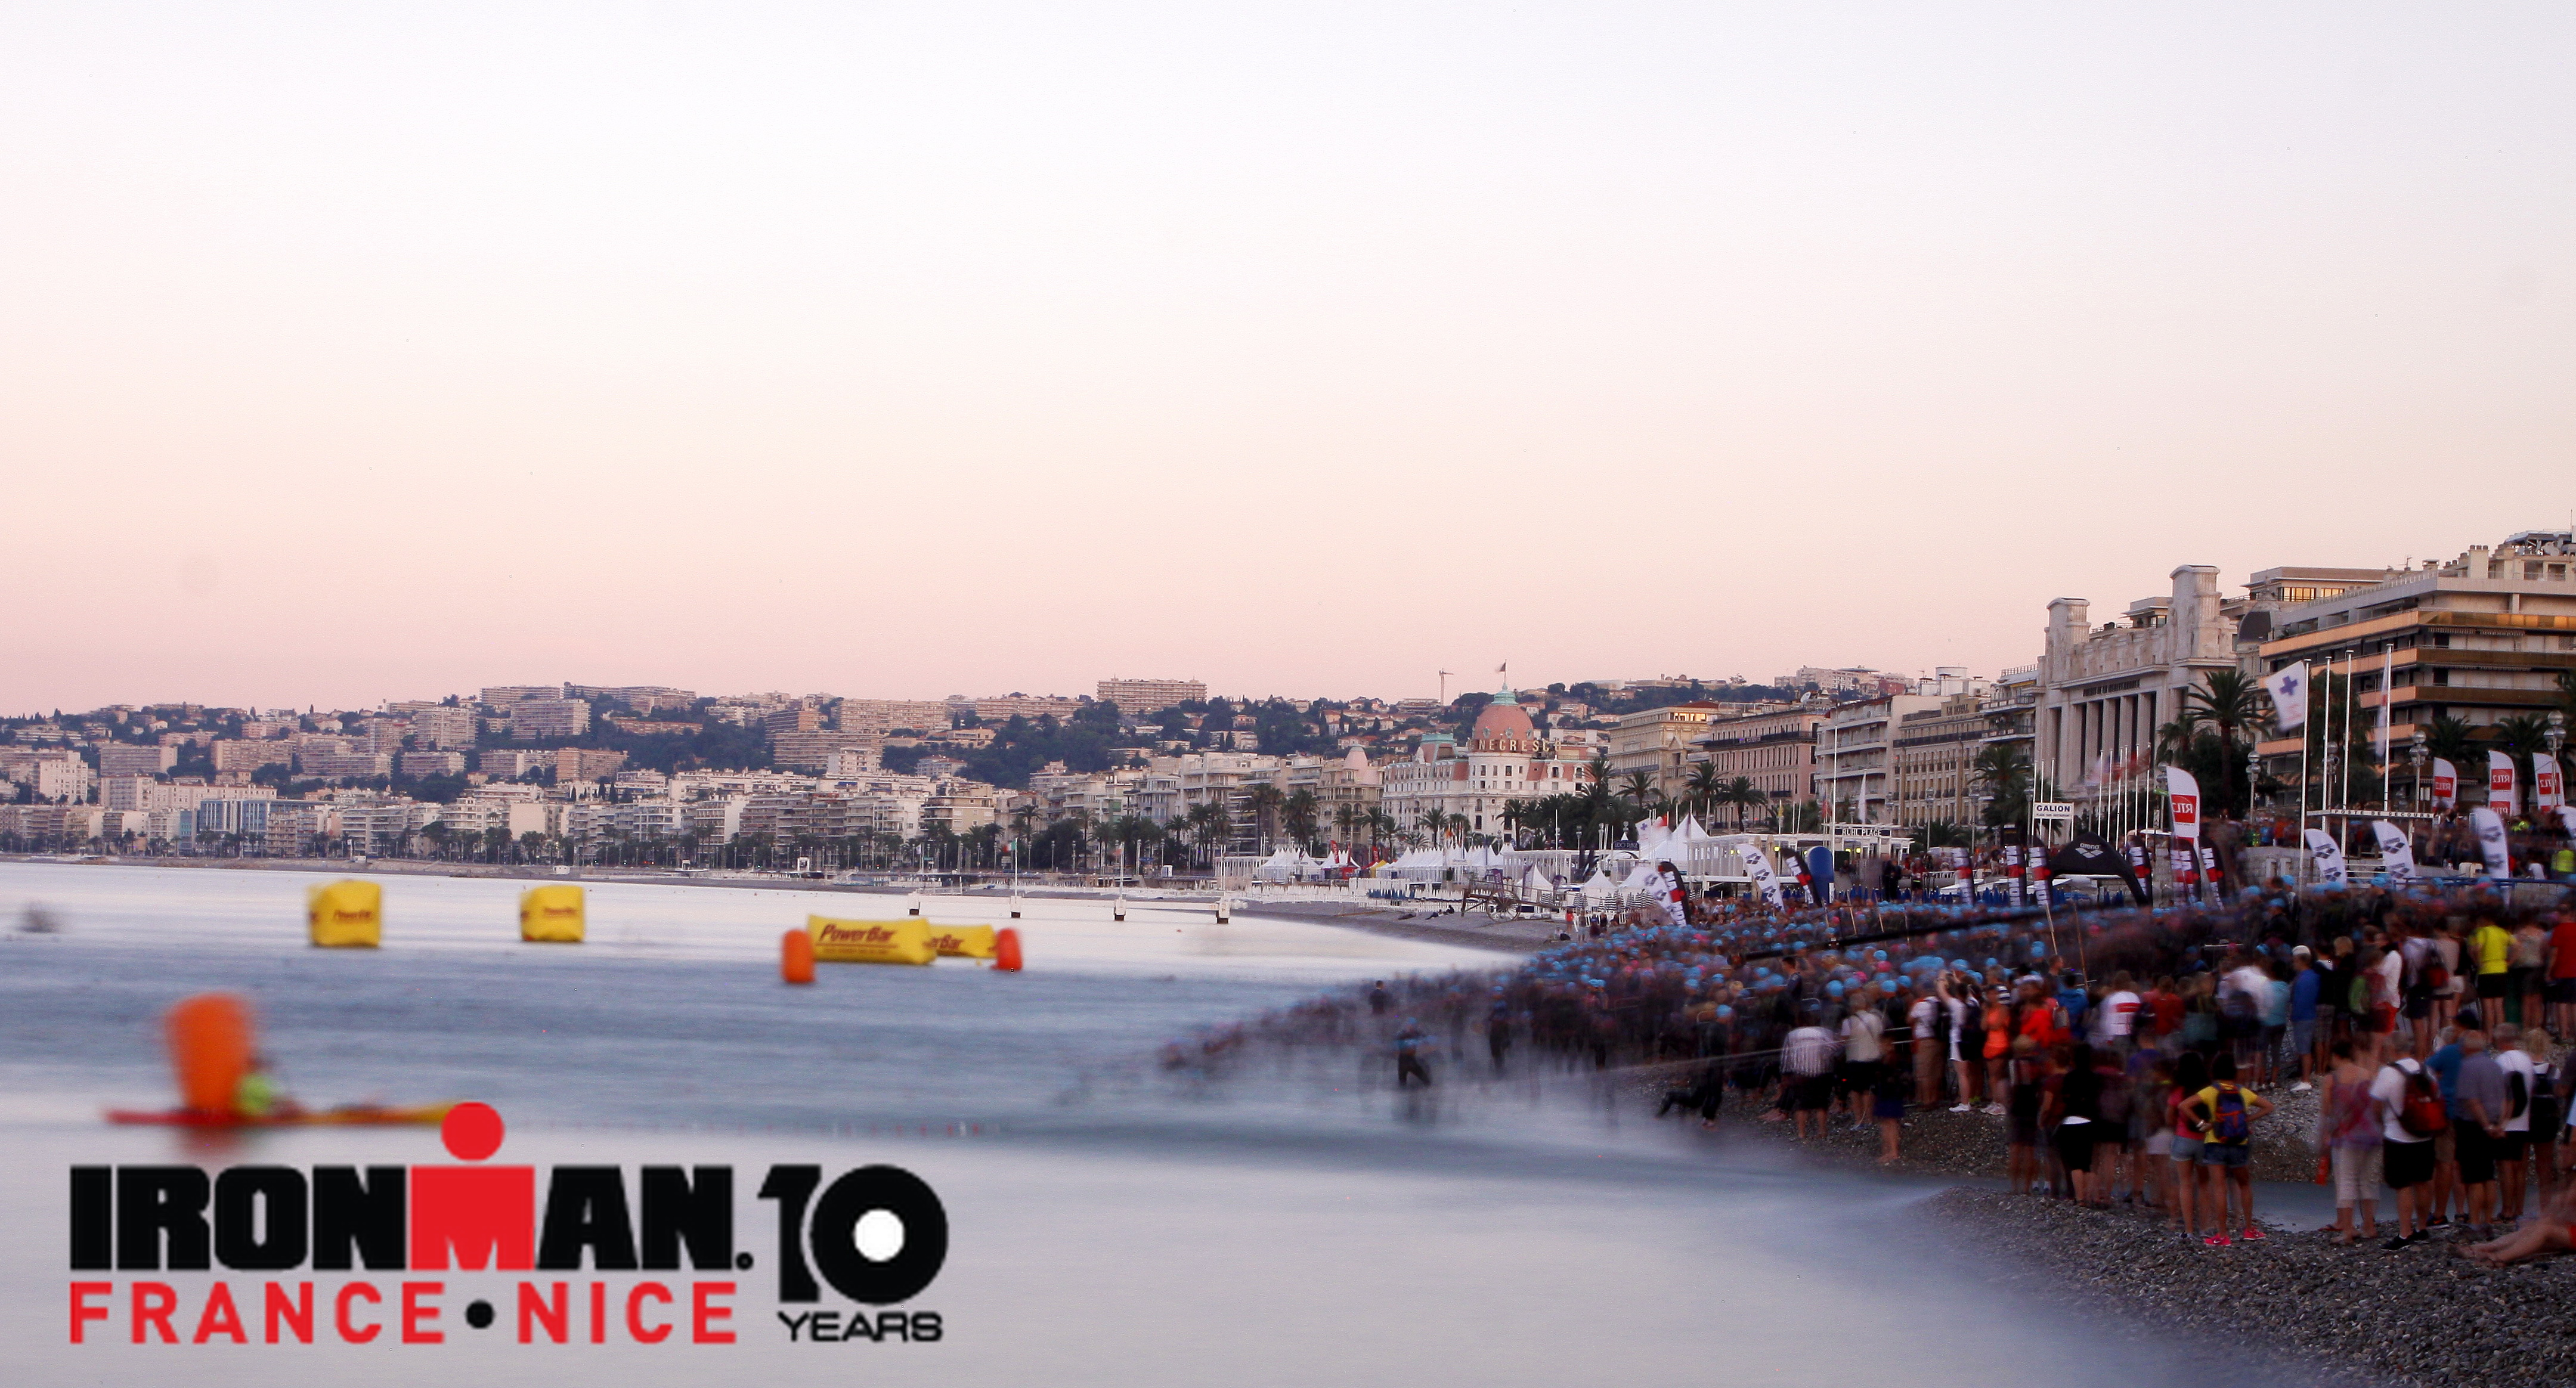 Discover our photo's gallery of Ironman France